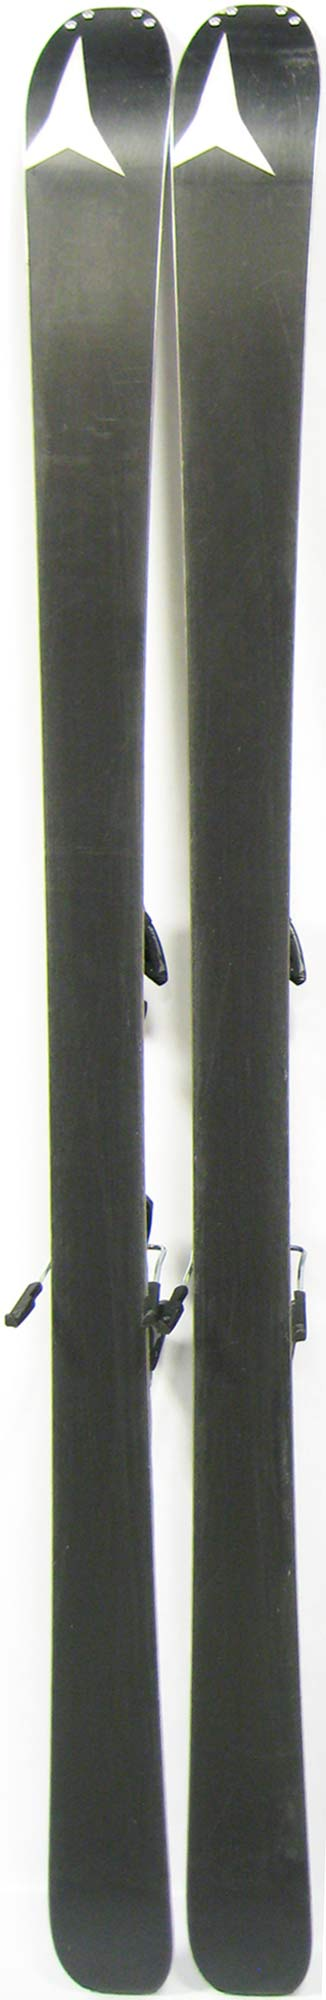 Bases of 2012 Atomic Nomad Blackeye Ti Skis For Sale